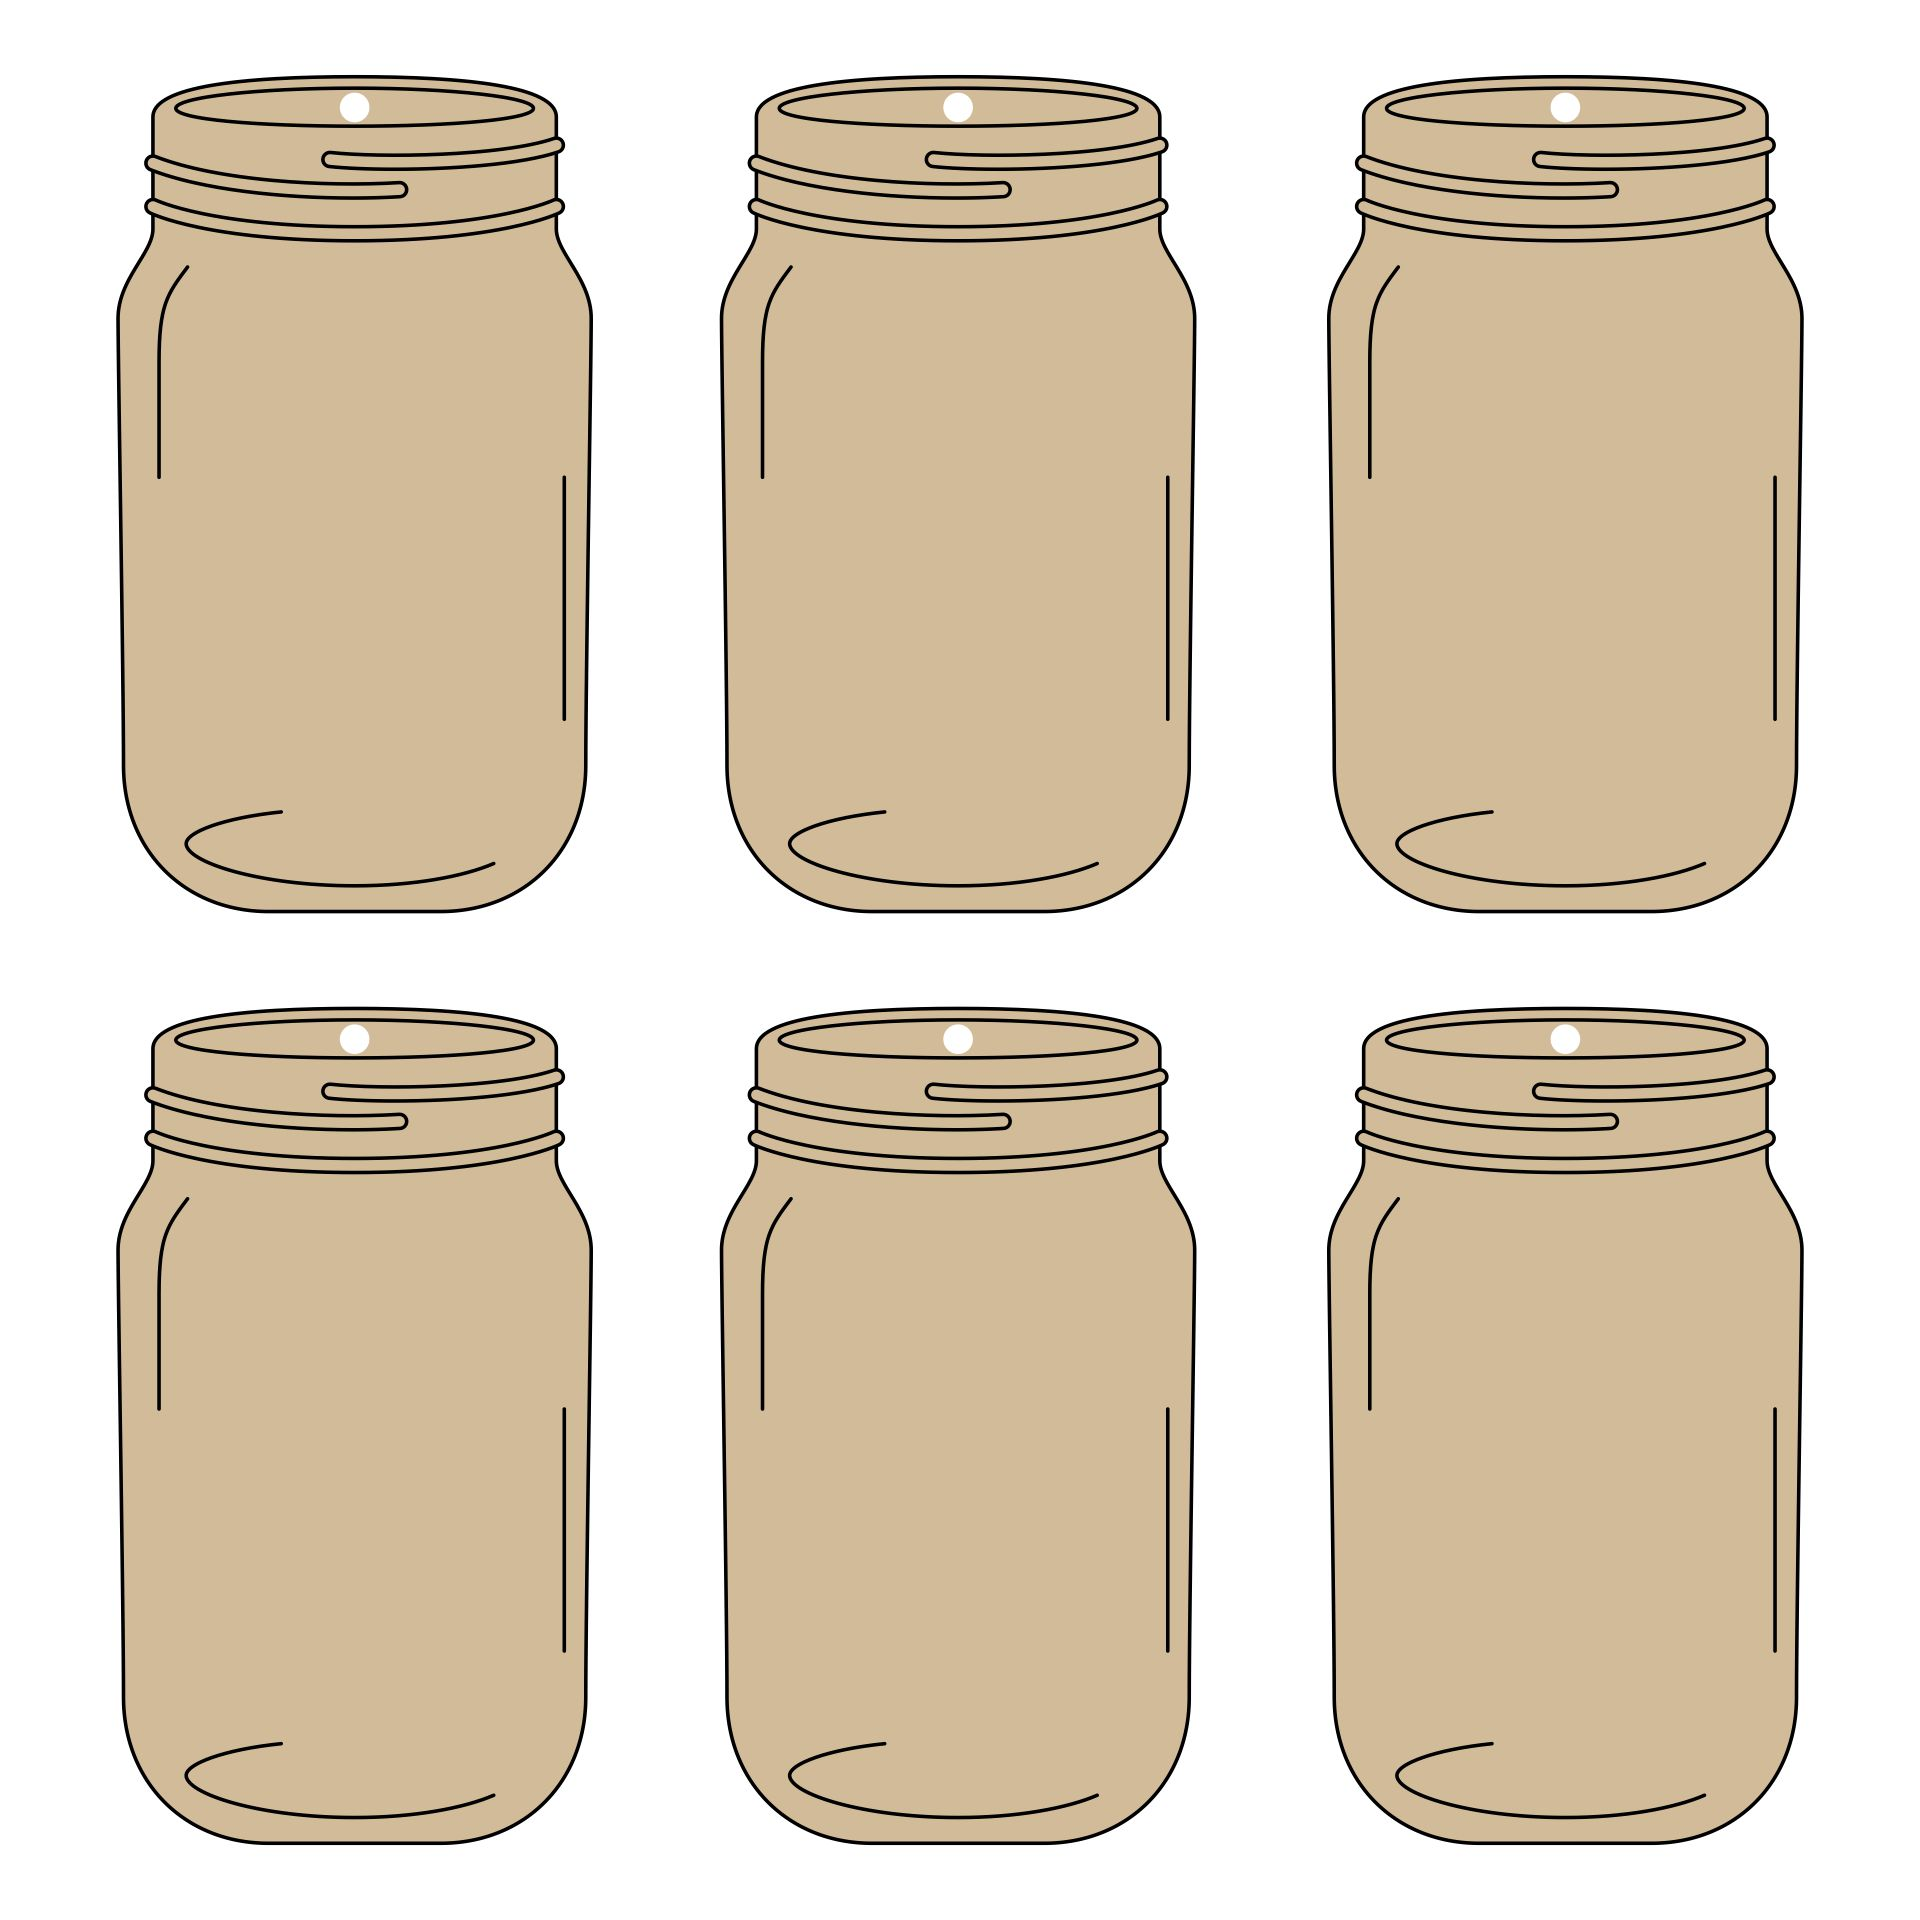 8 Images of Halloween Free Printable Canning Jar Label Templates